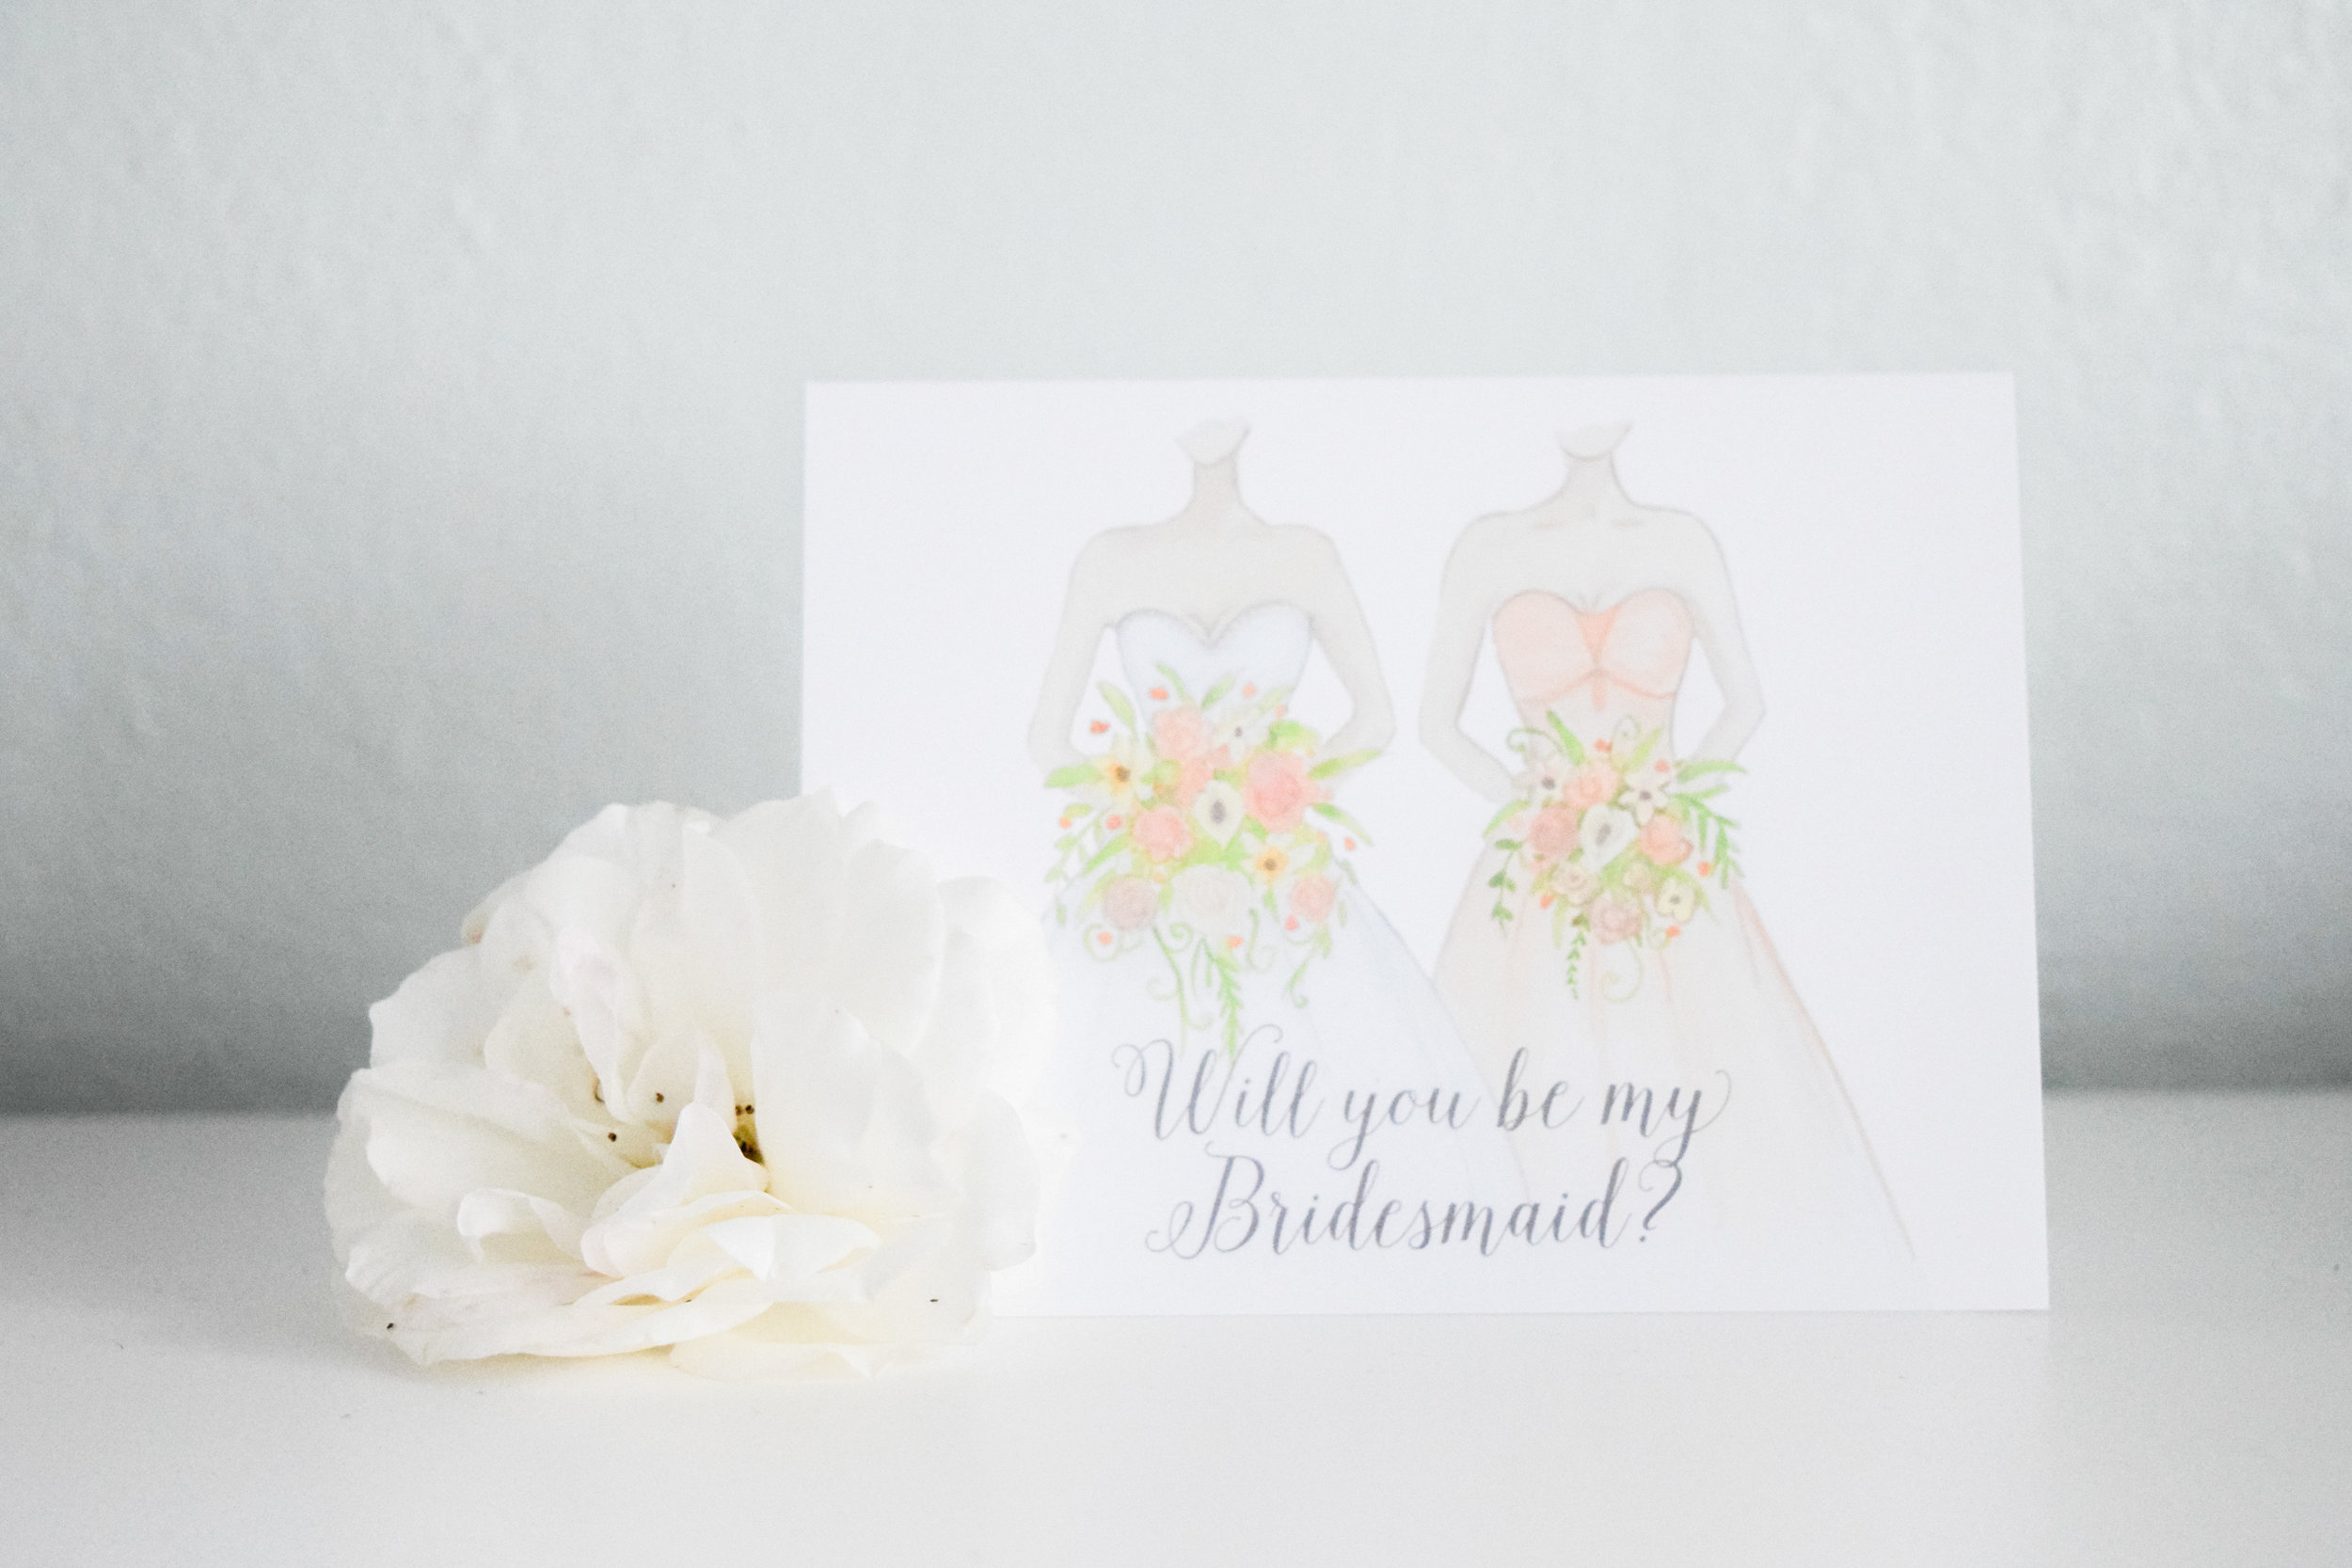 Bridesmaid Proposal Cards by Black Label Decor